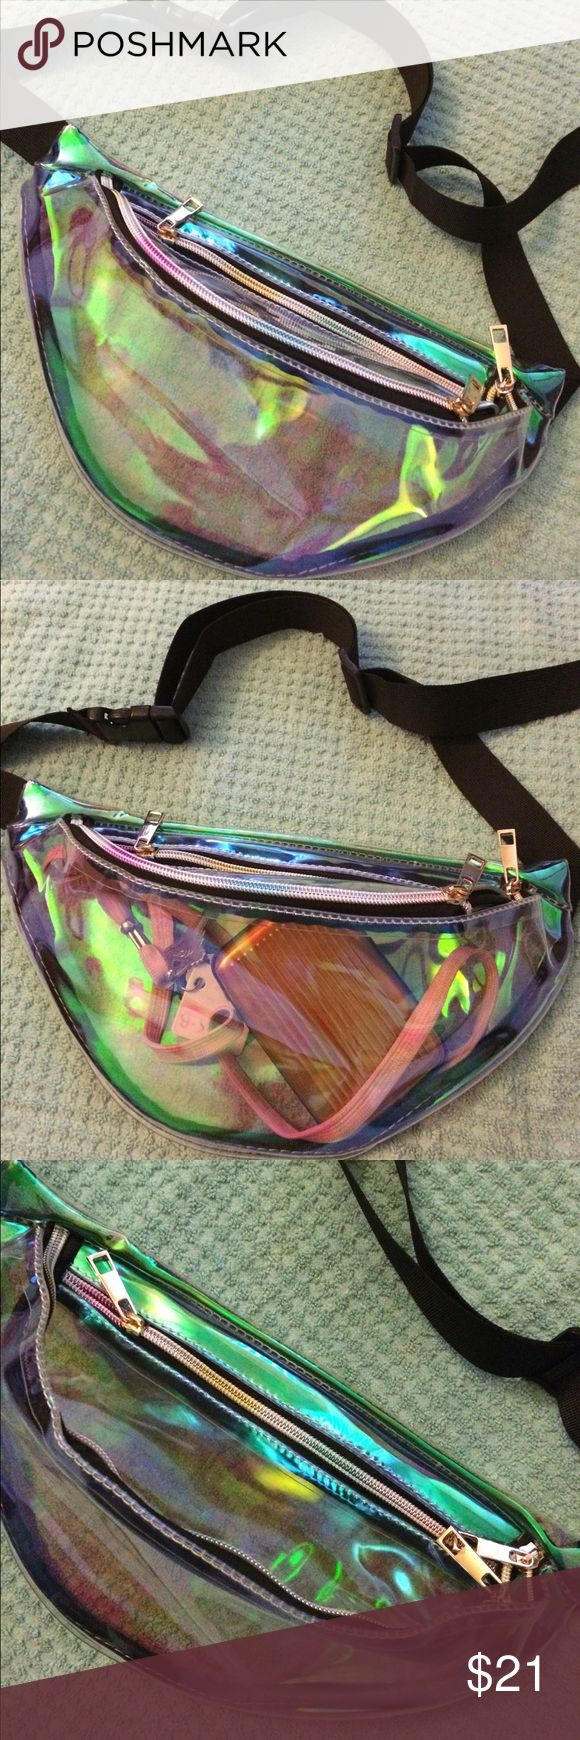 Large green holographic fanny pack! ✨ Brand new and never used holographic green fanny pack! See through (see example in second pic); perfect and super cute for music festivals, raves, or any events! Has TWO pockets (the main, larger one & a small one near the top) with gold zippers ✅UNIF for exposure UNIF Accessories